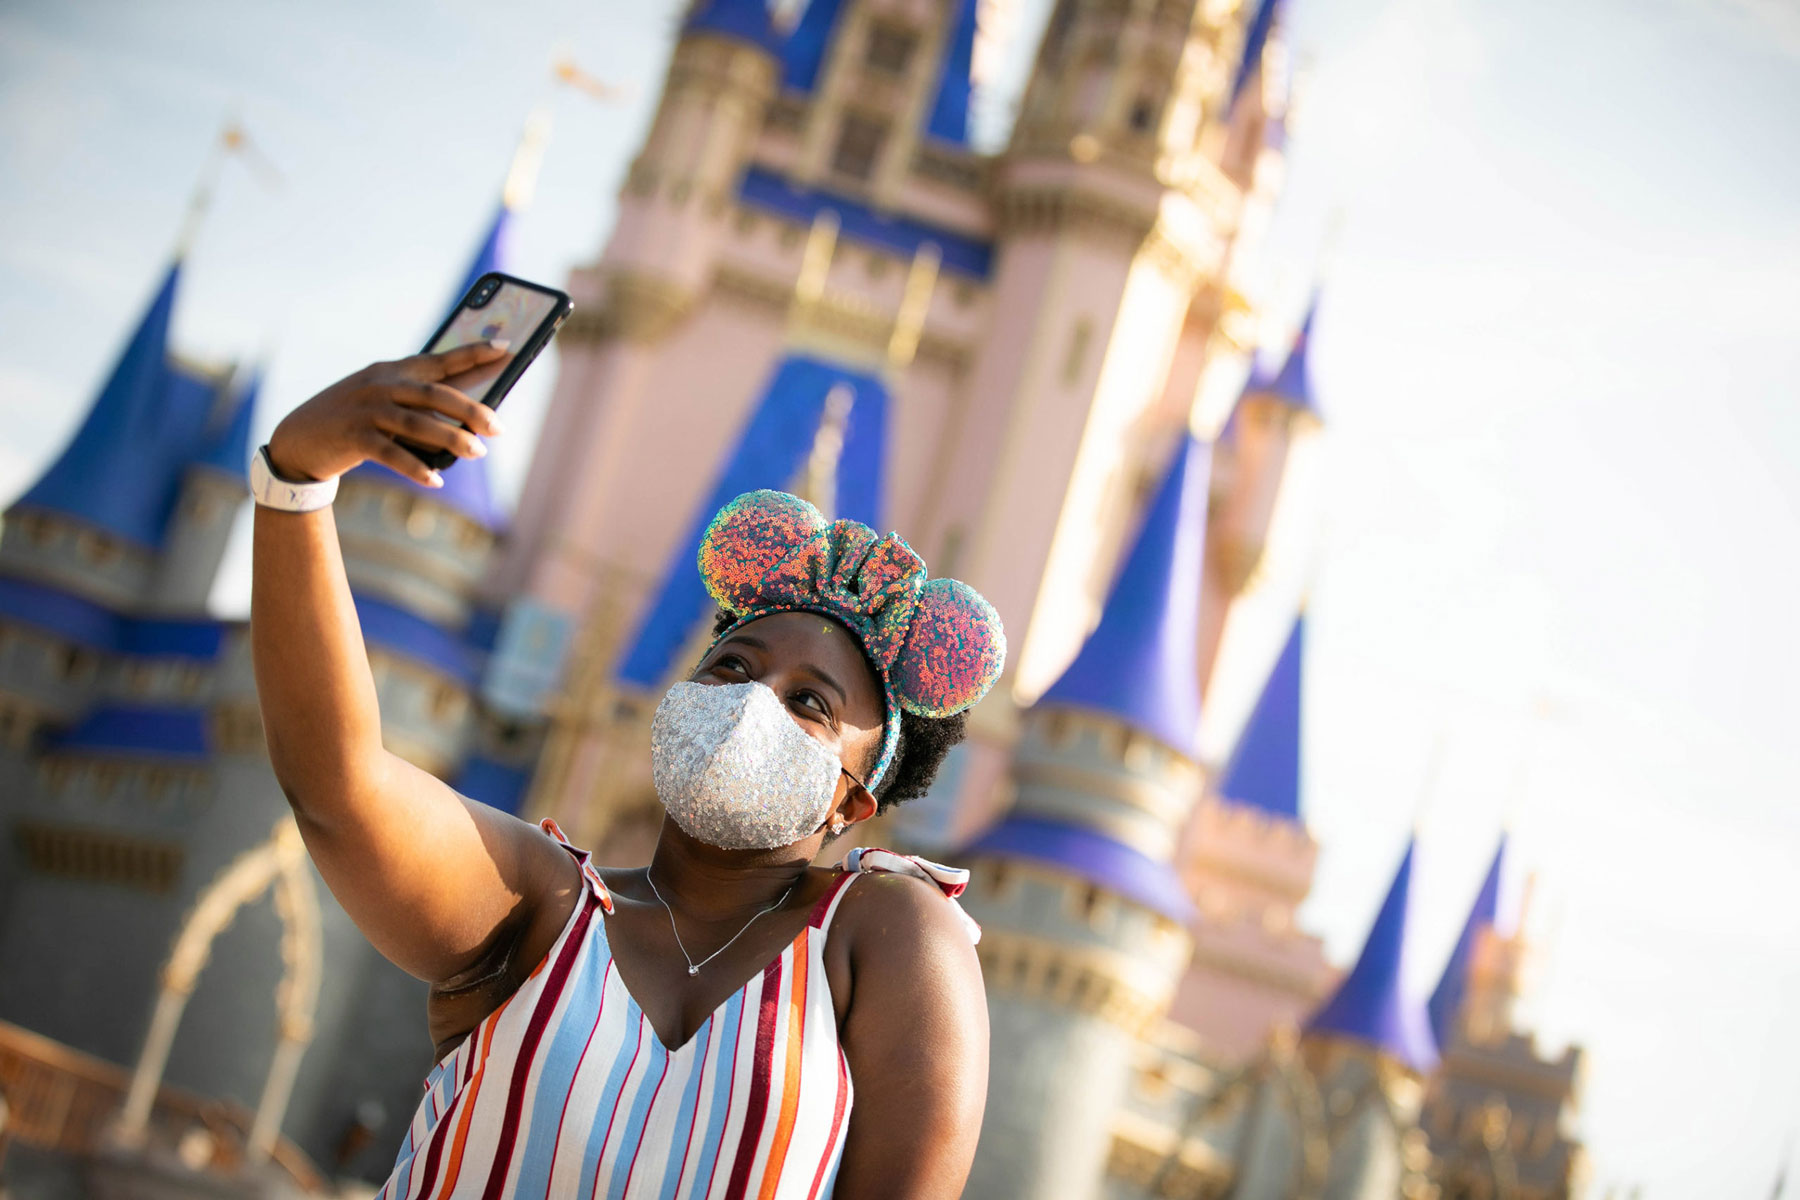 guest at Disney World taking a selfie with a cell phone